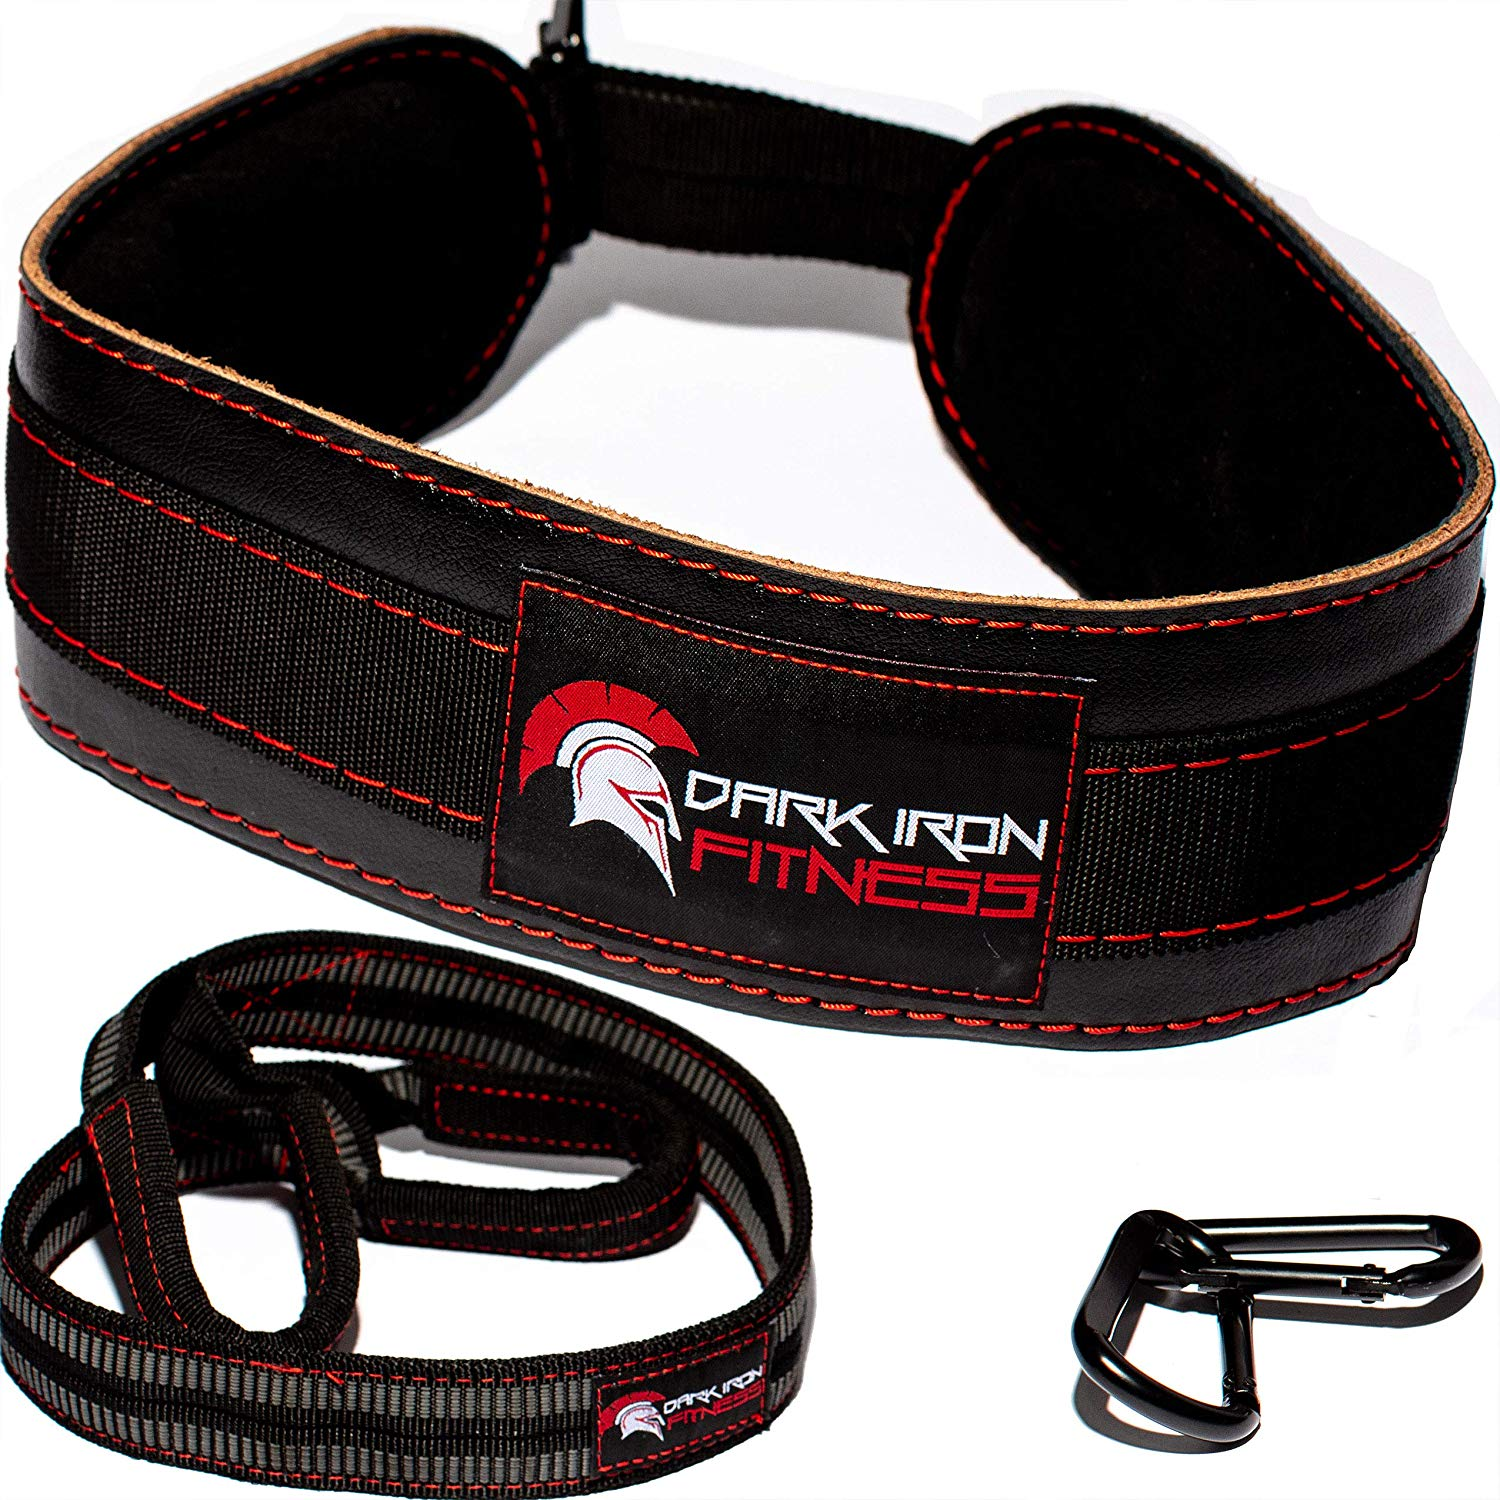 Dark Iron Fitness Weight Lifting Leather Dip Belt